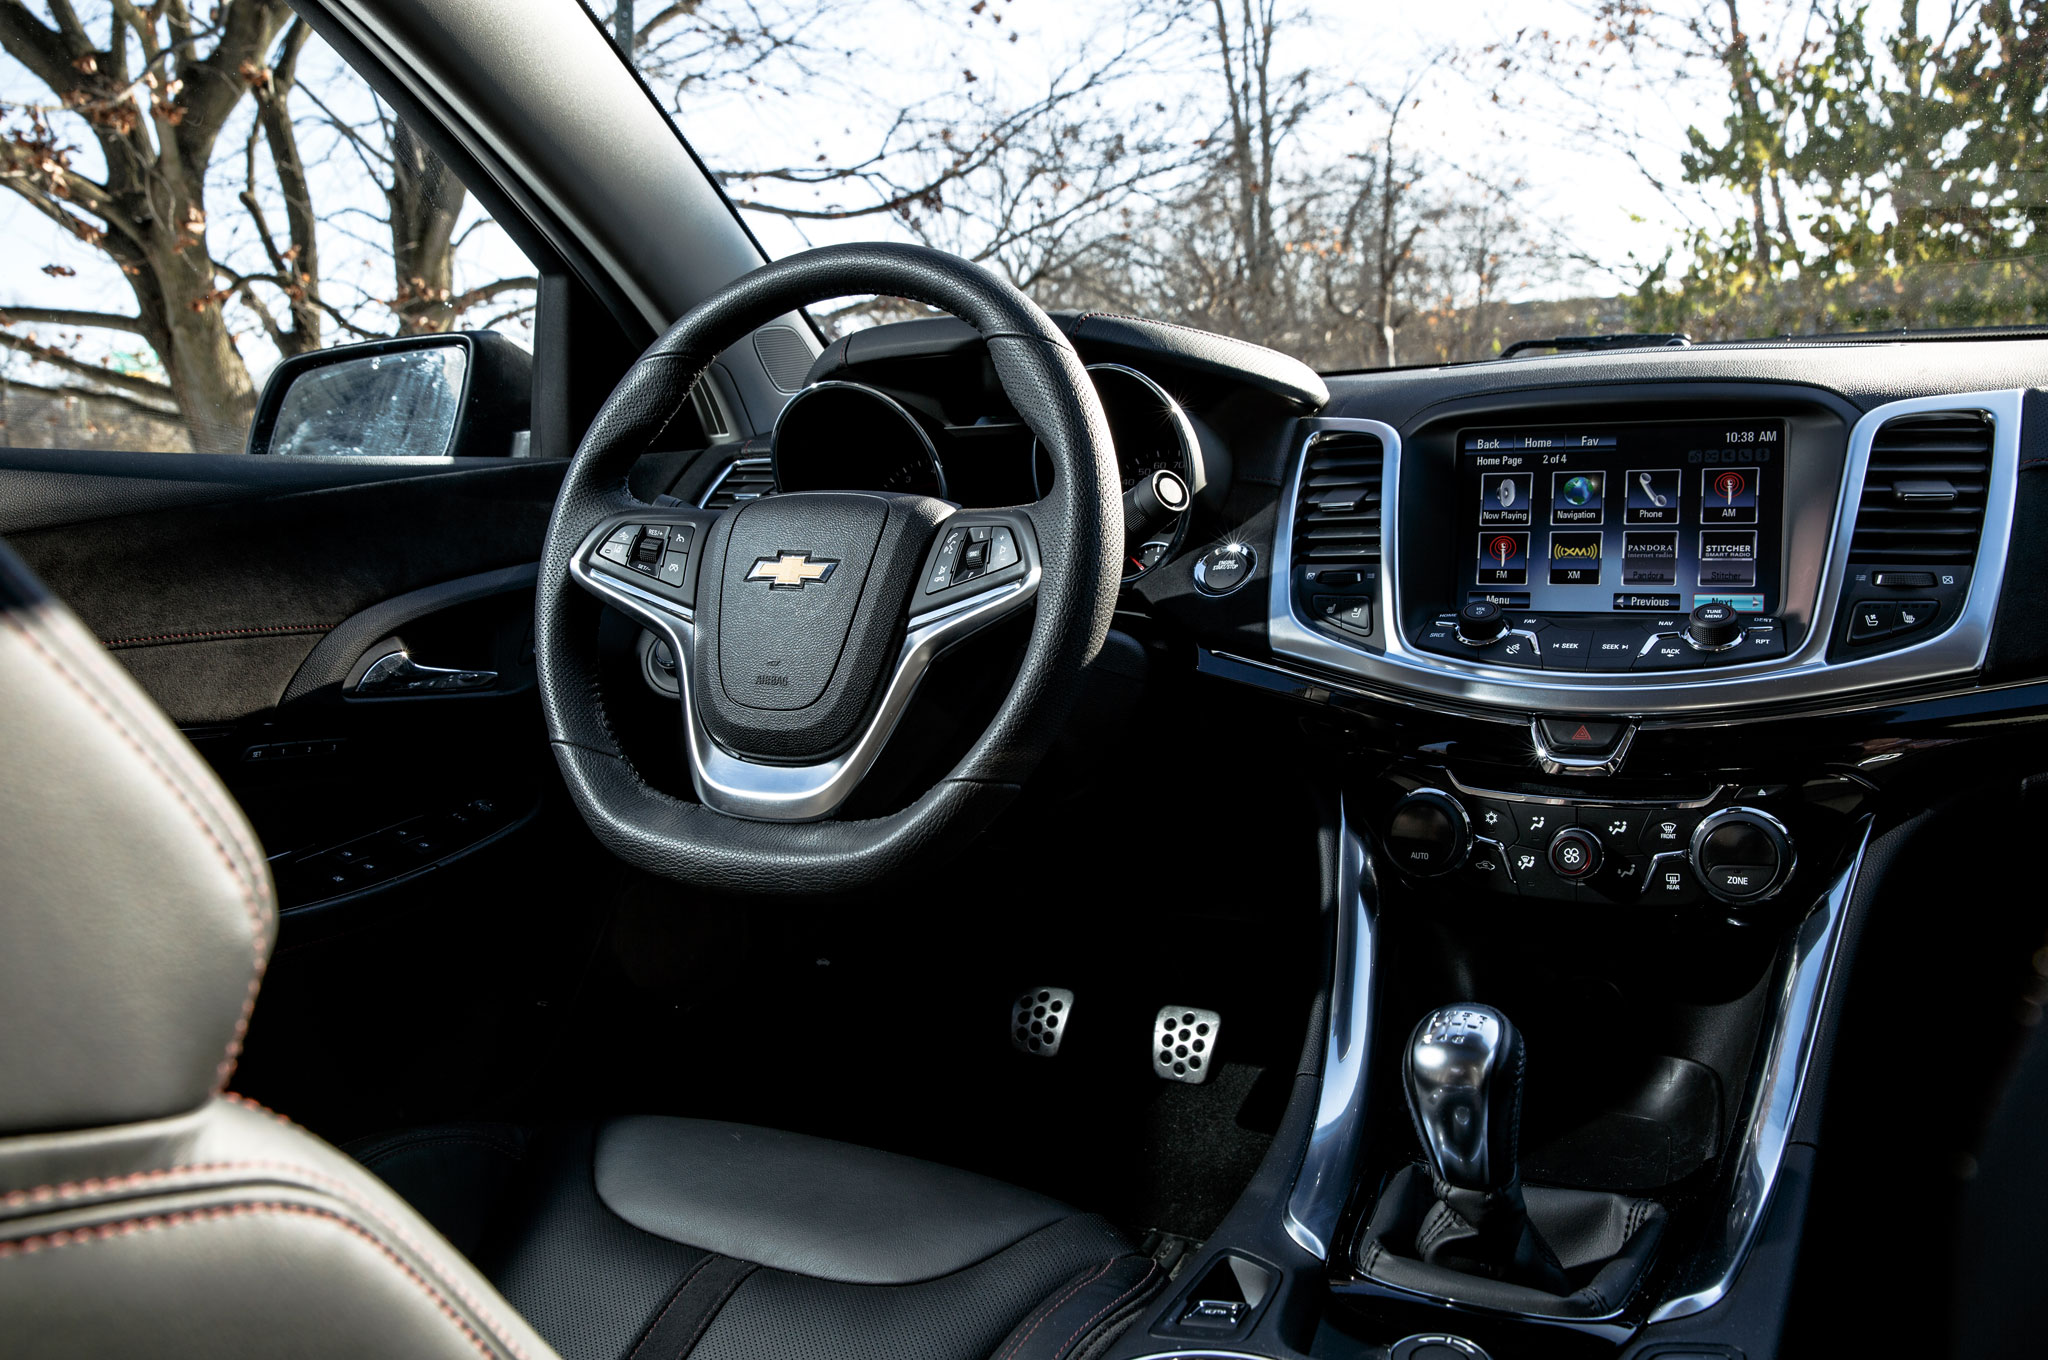 2015 Chevrolet SS Shifter And Media Display